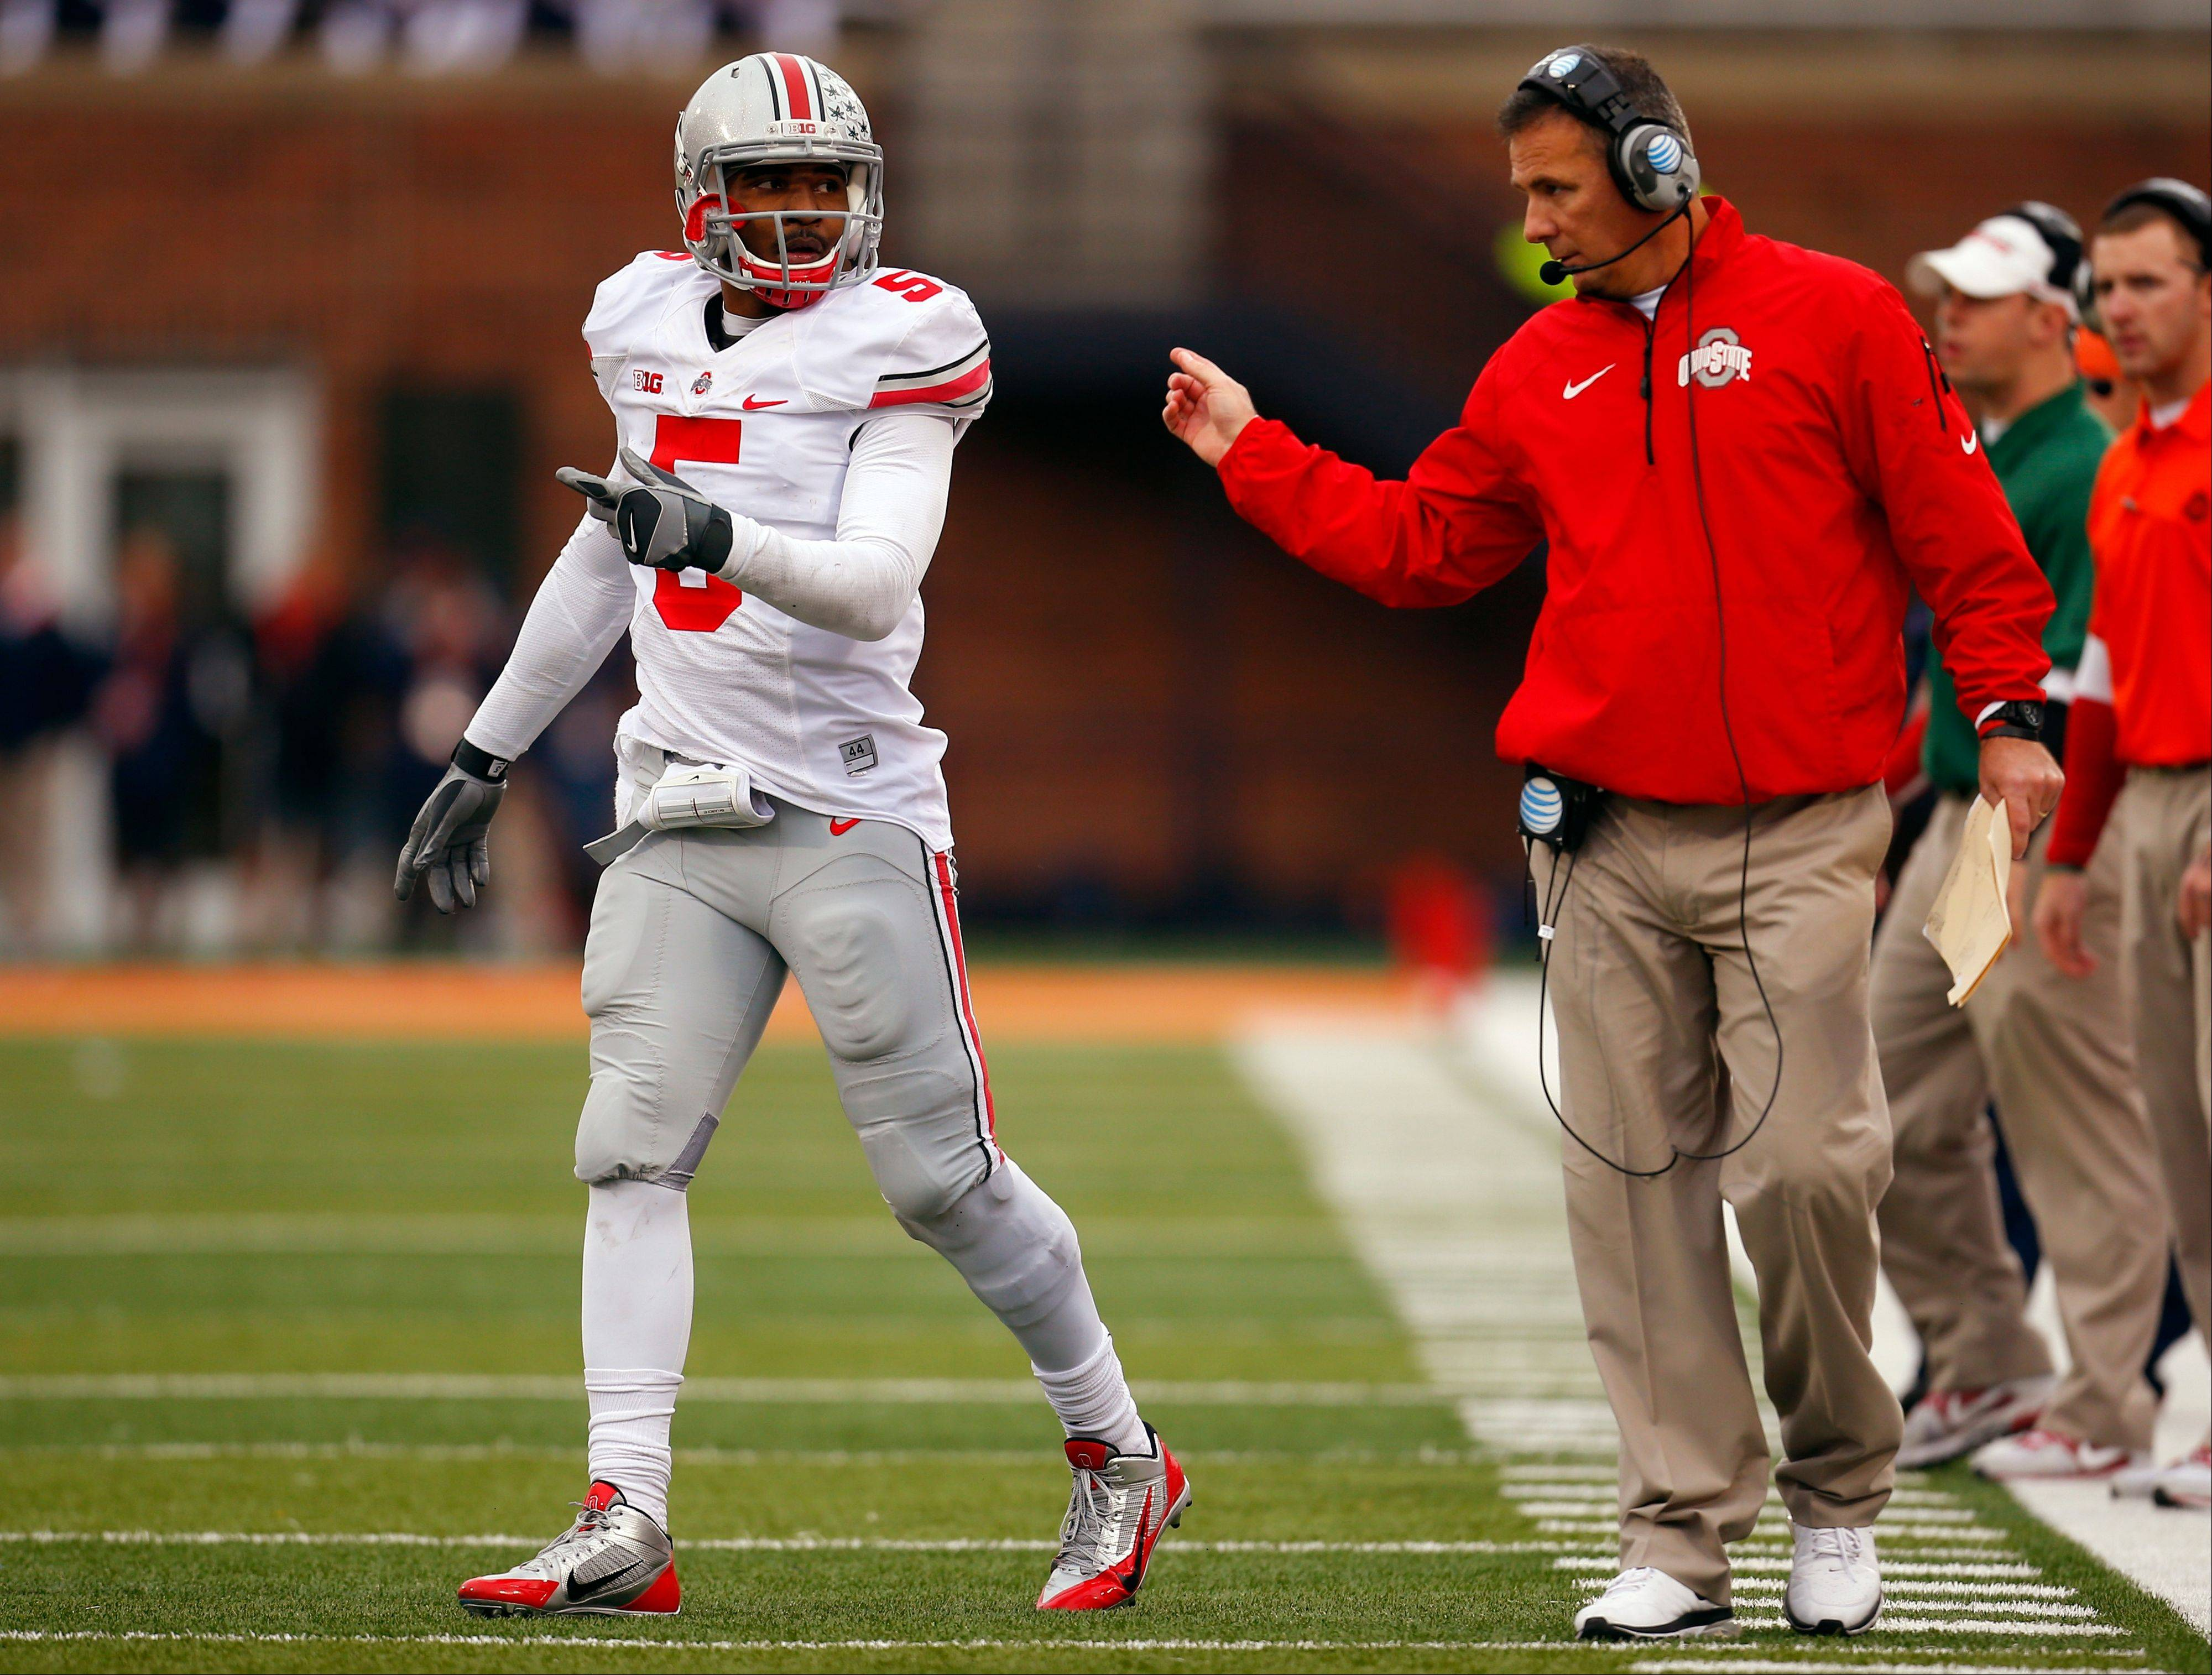 Ohio State head coach Urban Meyer talks with his quarterback Braxton Miller during the second half of Saturday's road win over Illinois. The Buckeyes have won a nation's best 22 games in a row but are ranked a distant No. 3 in the latest BCS ranking.